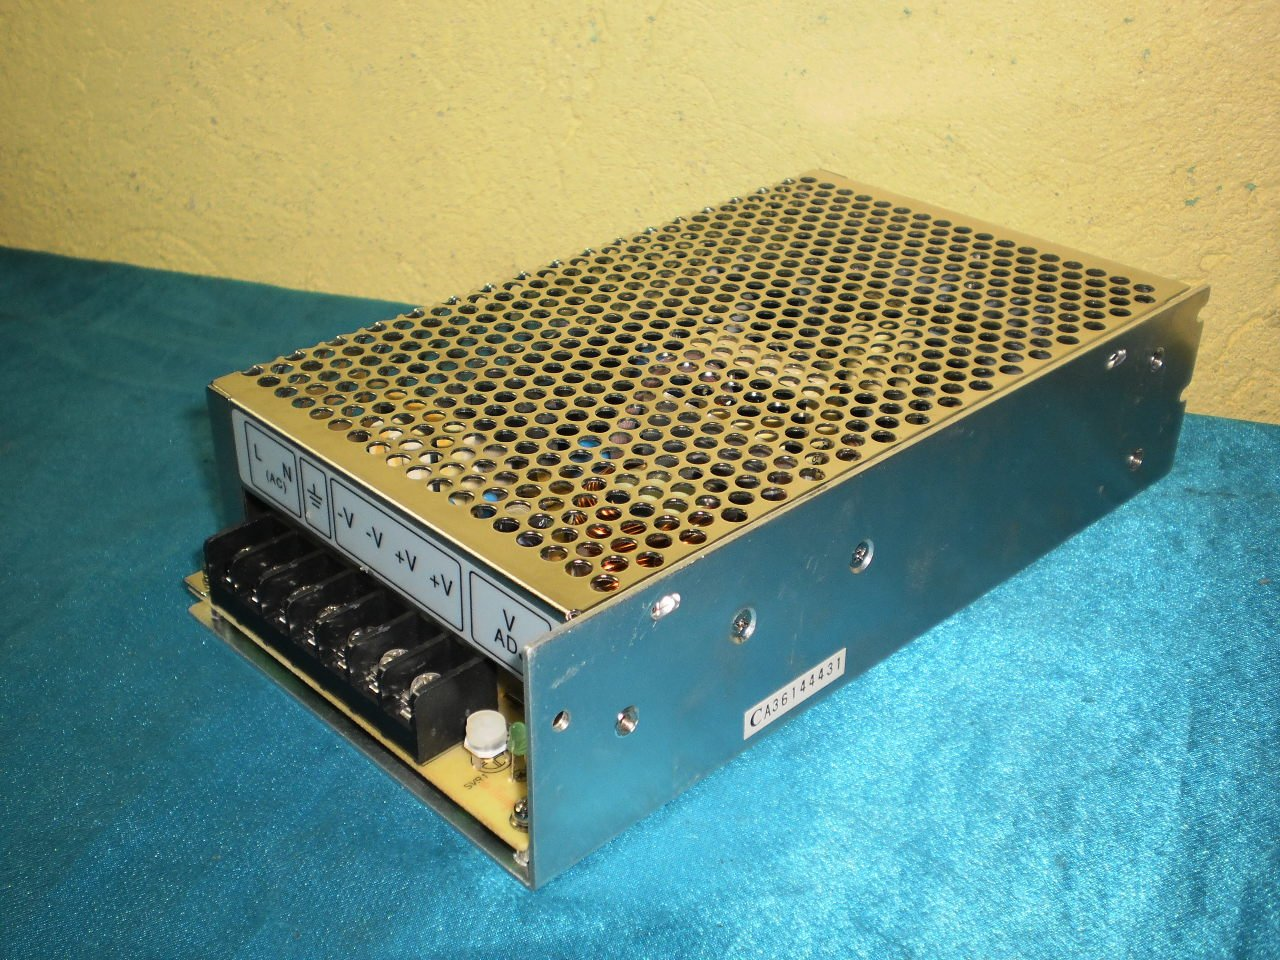 Mean Well S-150-24 Power Supply